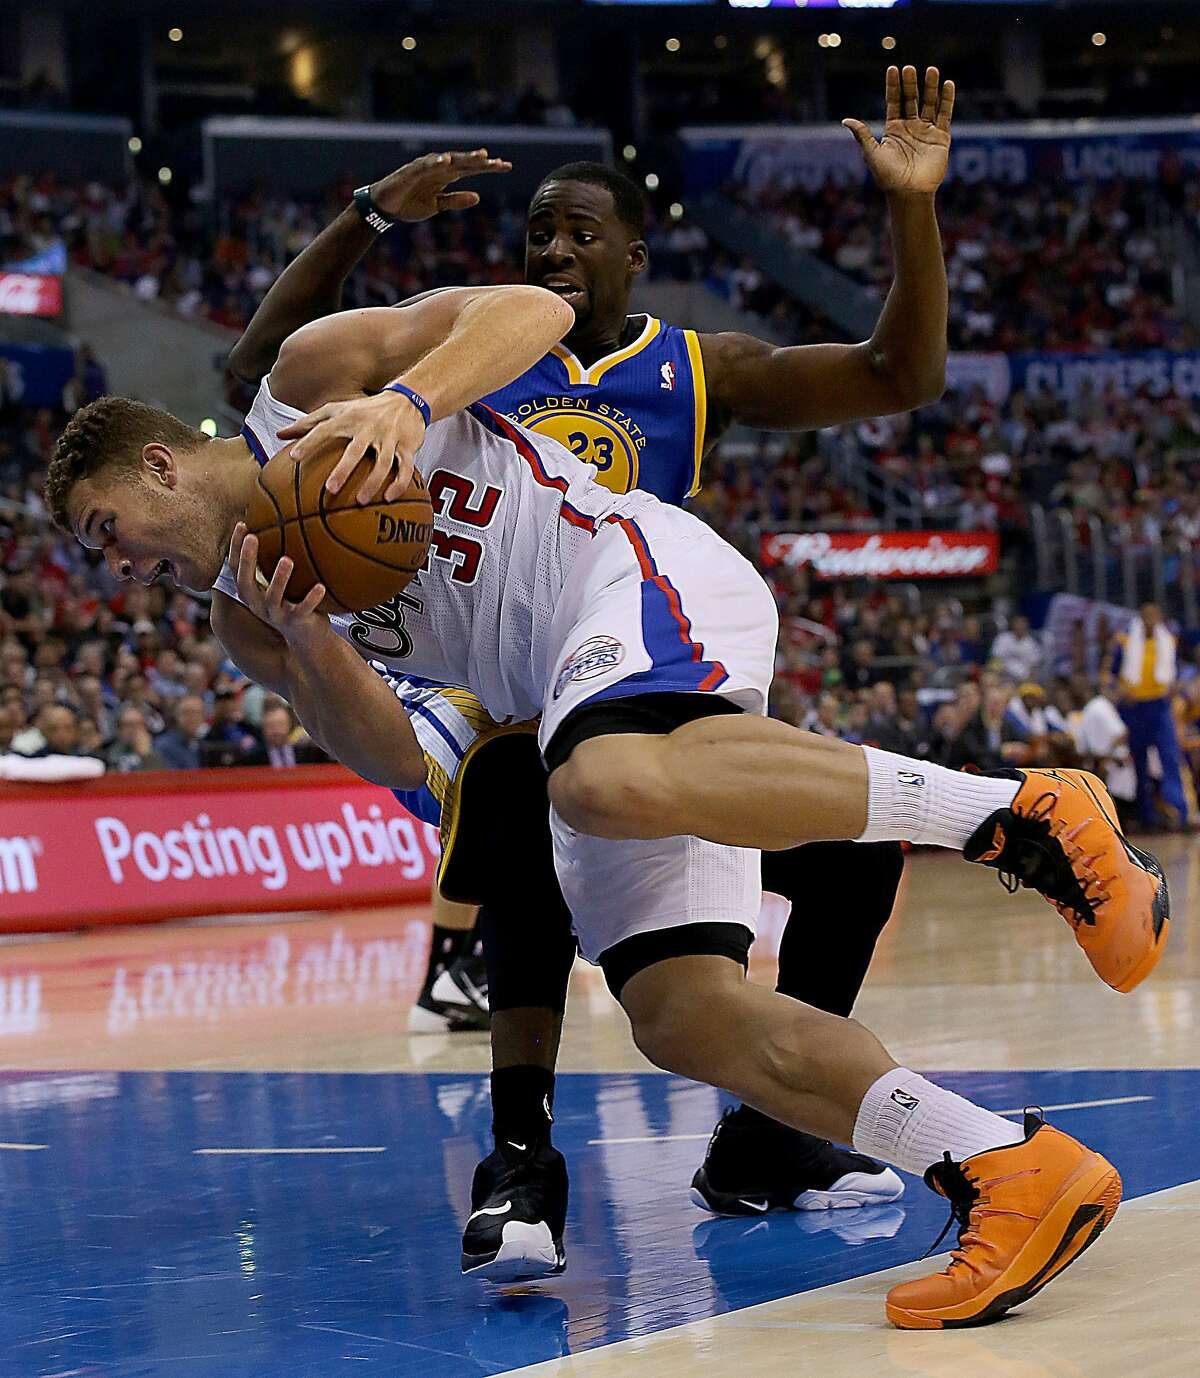 The Los Angeles Clippers' Blake Griffin (32) is tripped up by the Golden State Warriors' Draymond Green in the second quarter at Staples Center in Los Angeles, California, on Thursday, October 31, 2013. (Luis Sinco/Los Angeles Times/MCT)